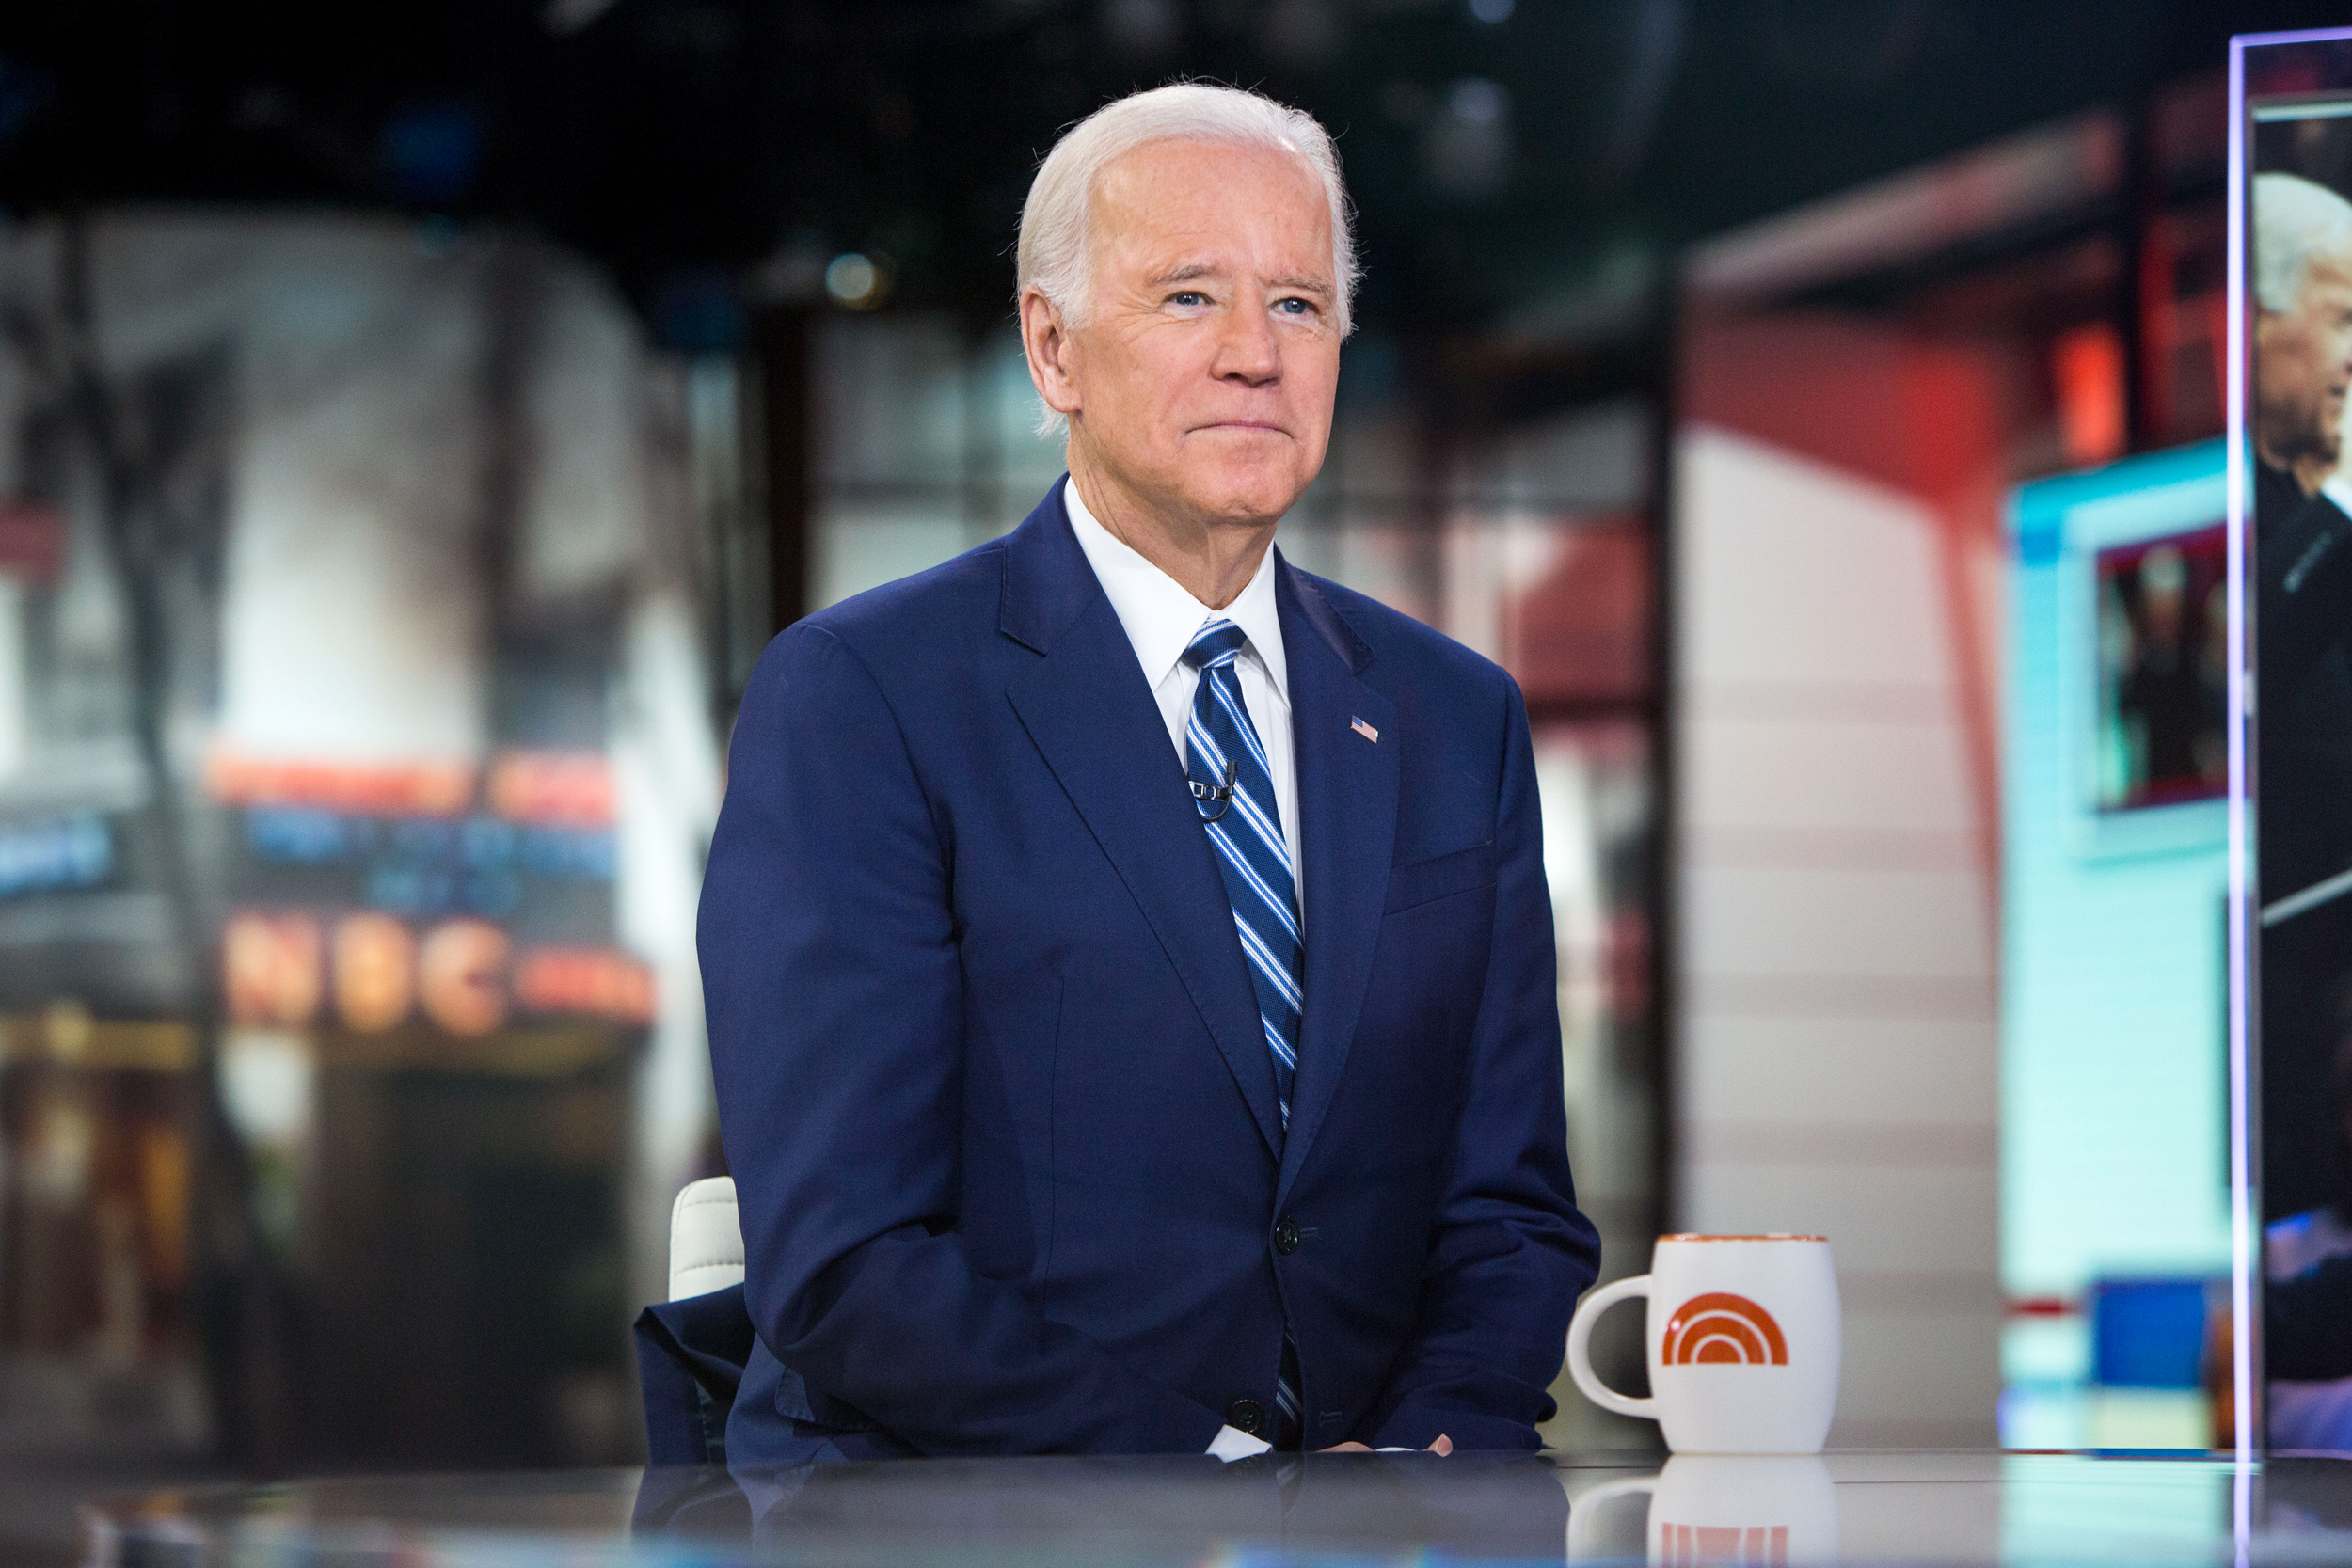 Biden: Handling Russian pre-election interference was 'tricky as hell'